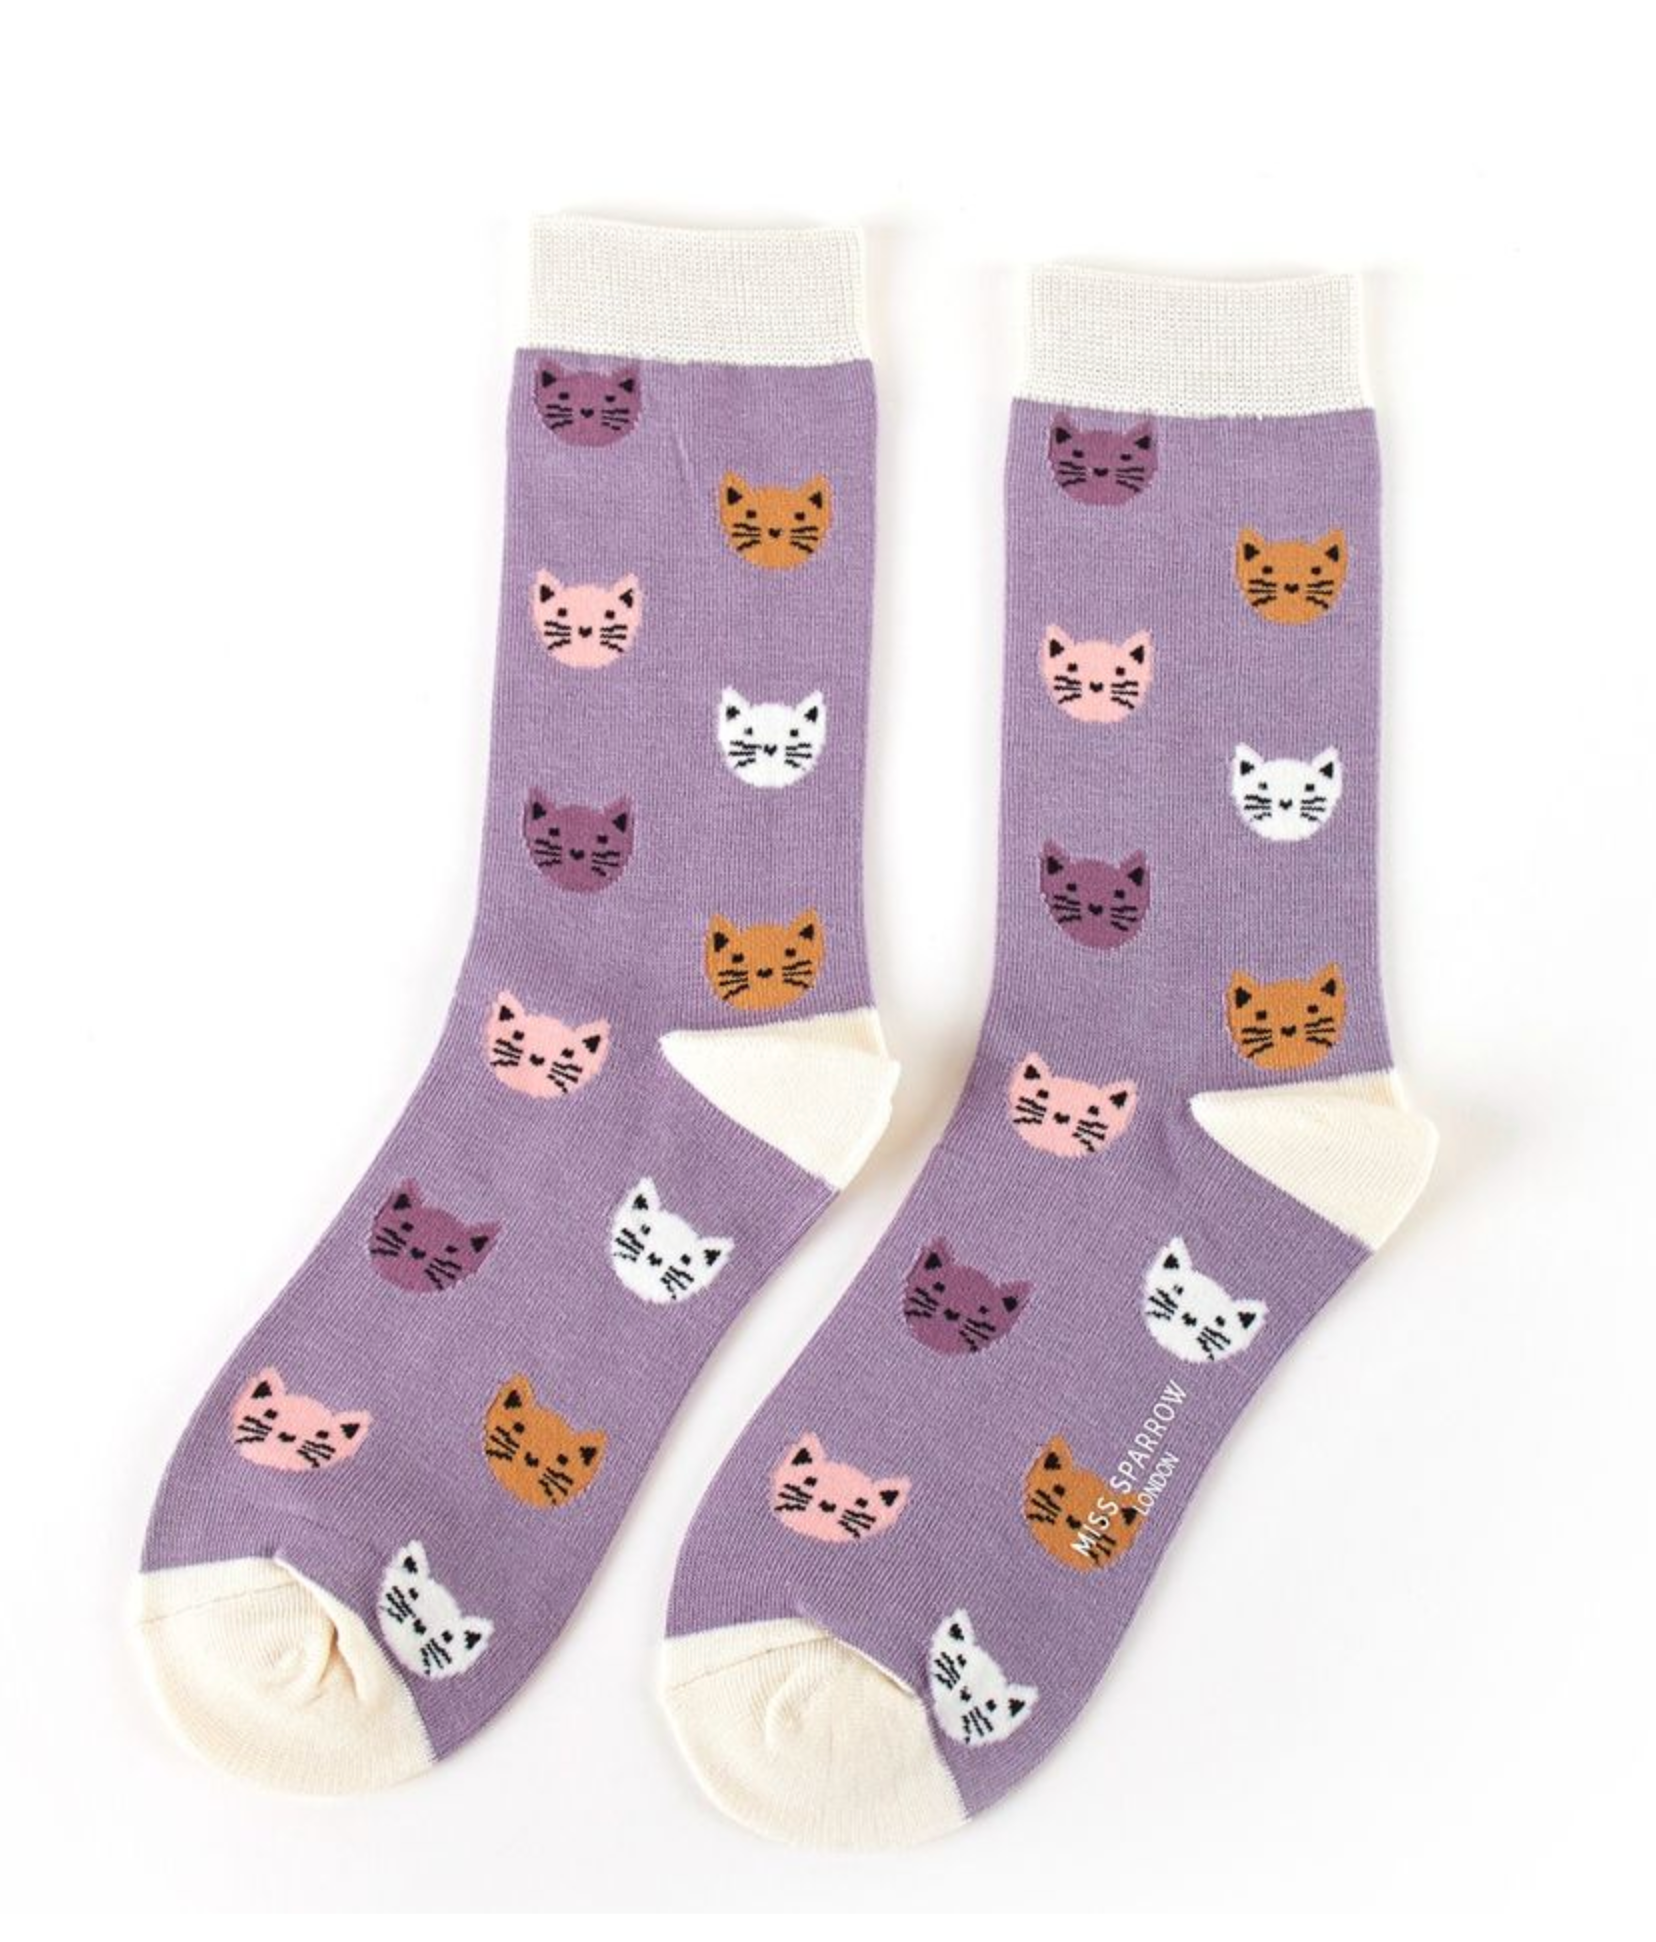 Miss Sparrow Bamboo Ladies Socks - Cat Faces Lavender